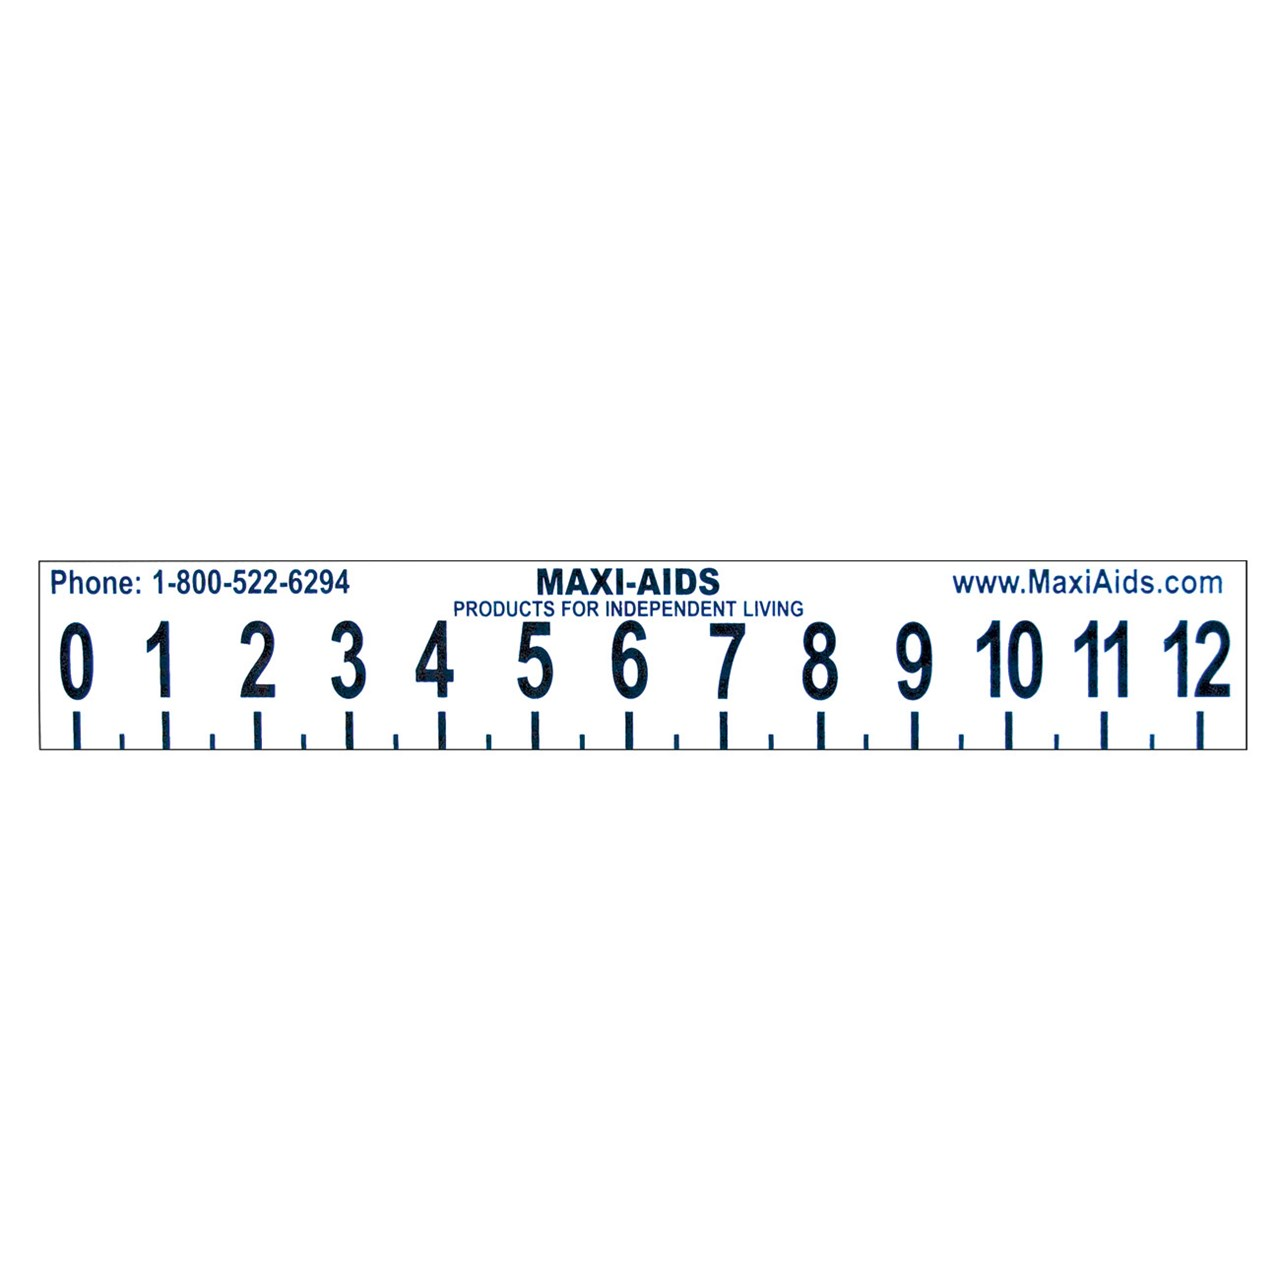 photograph relating to Printable Ruler Inches known as Higher Print 12 inch Ruler with Braille illustrated alphabet